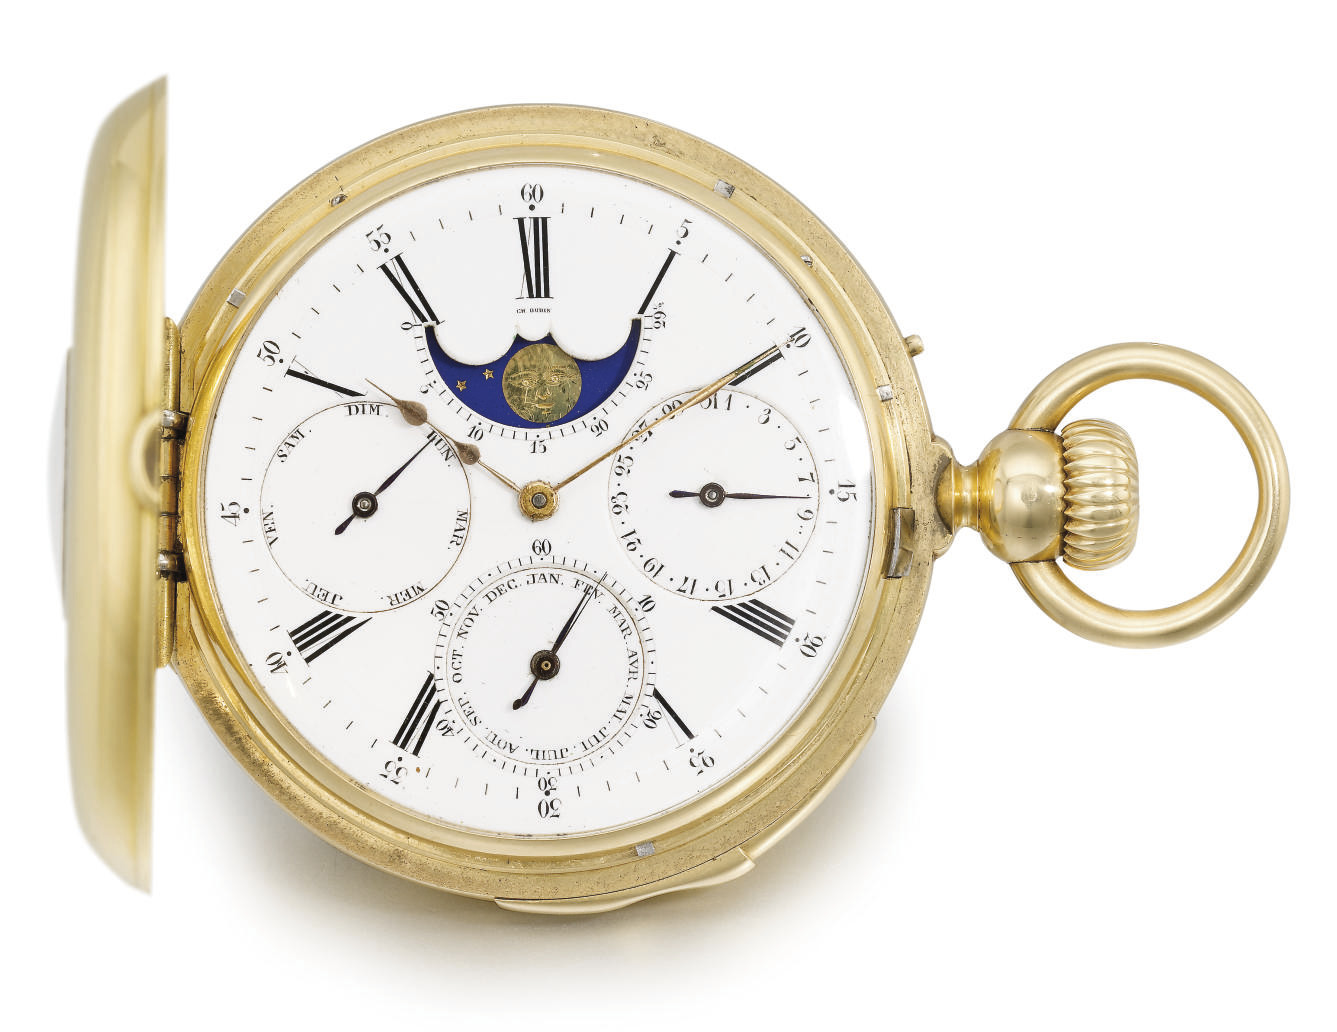 Louis Audemars, made for Charles Oudin. A fine, rare and early 18K gold half hunter case minute repeating perpetual calendar keyless lever watch with moon phases